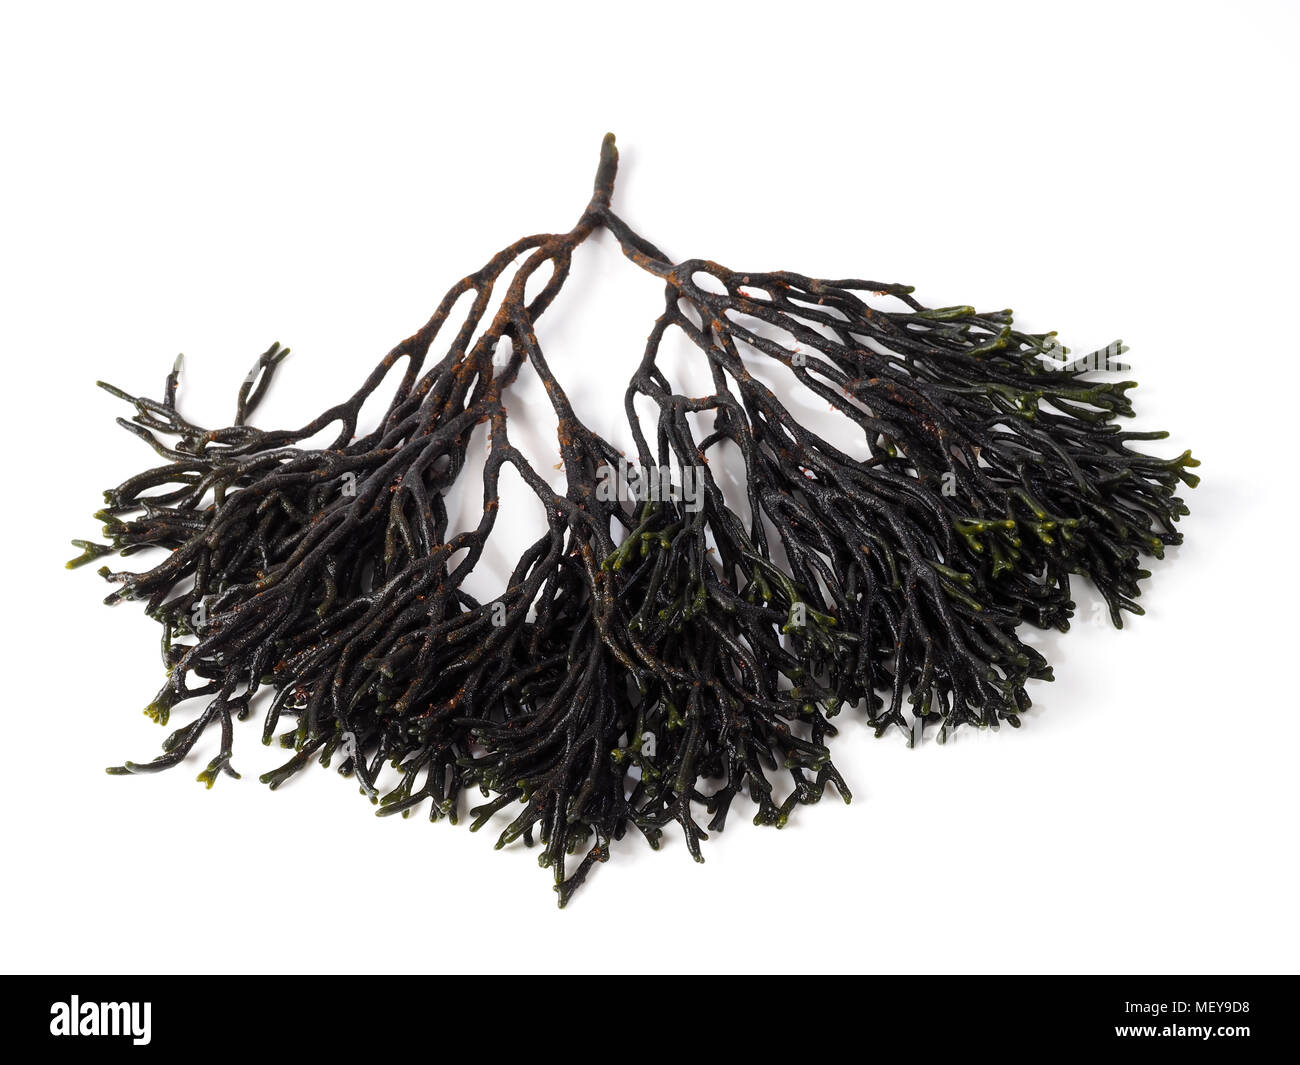 Codium – Velvet horn – Spongeweed.  Edible green seaweed in the family Codiaceae. Binomial name: Codium tomentosum. There are about 50 species worldwi - Stock Image